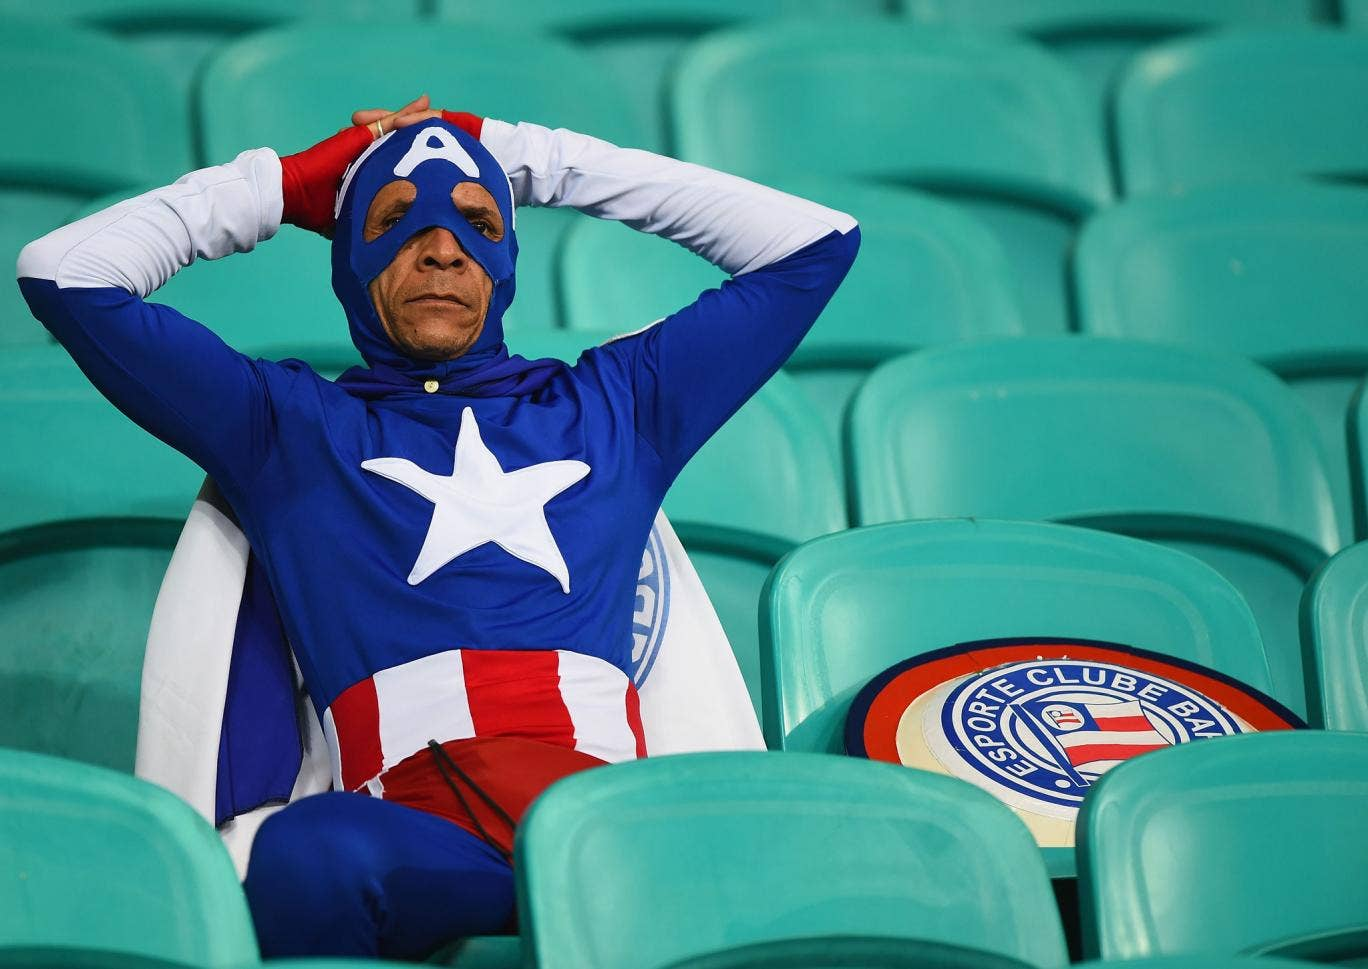 A fan dressed as Captain America looks on after Belgium's 2-1 victory in extra time during the 2014 FIFA World Cup Brazil